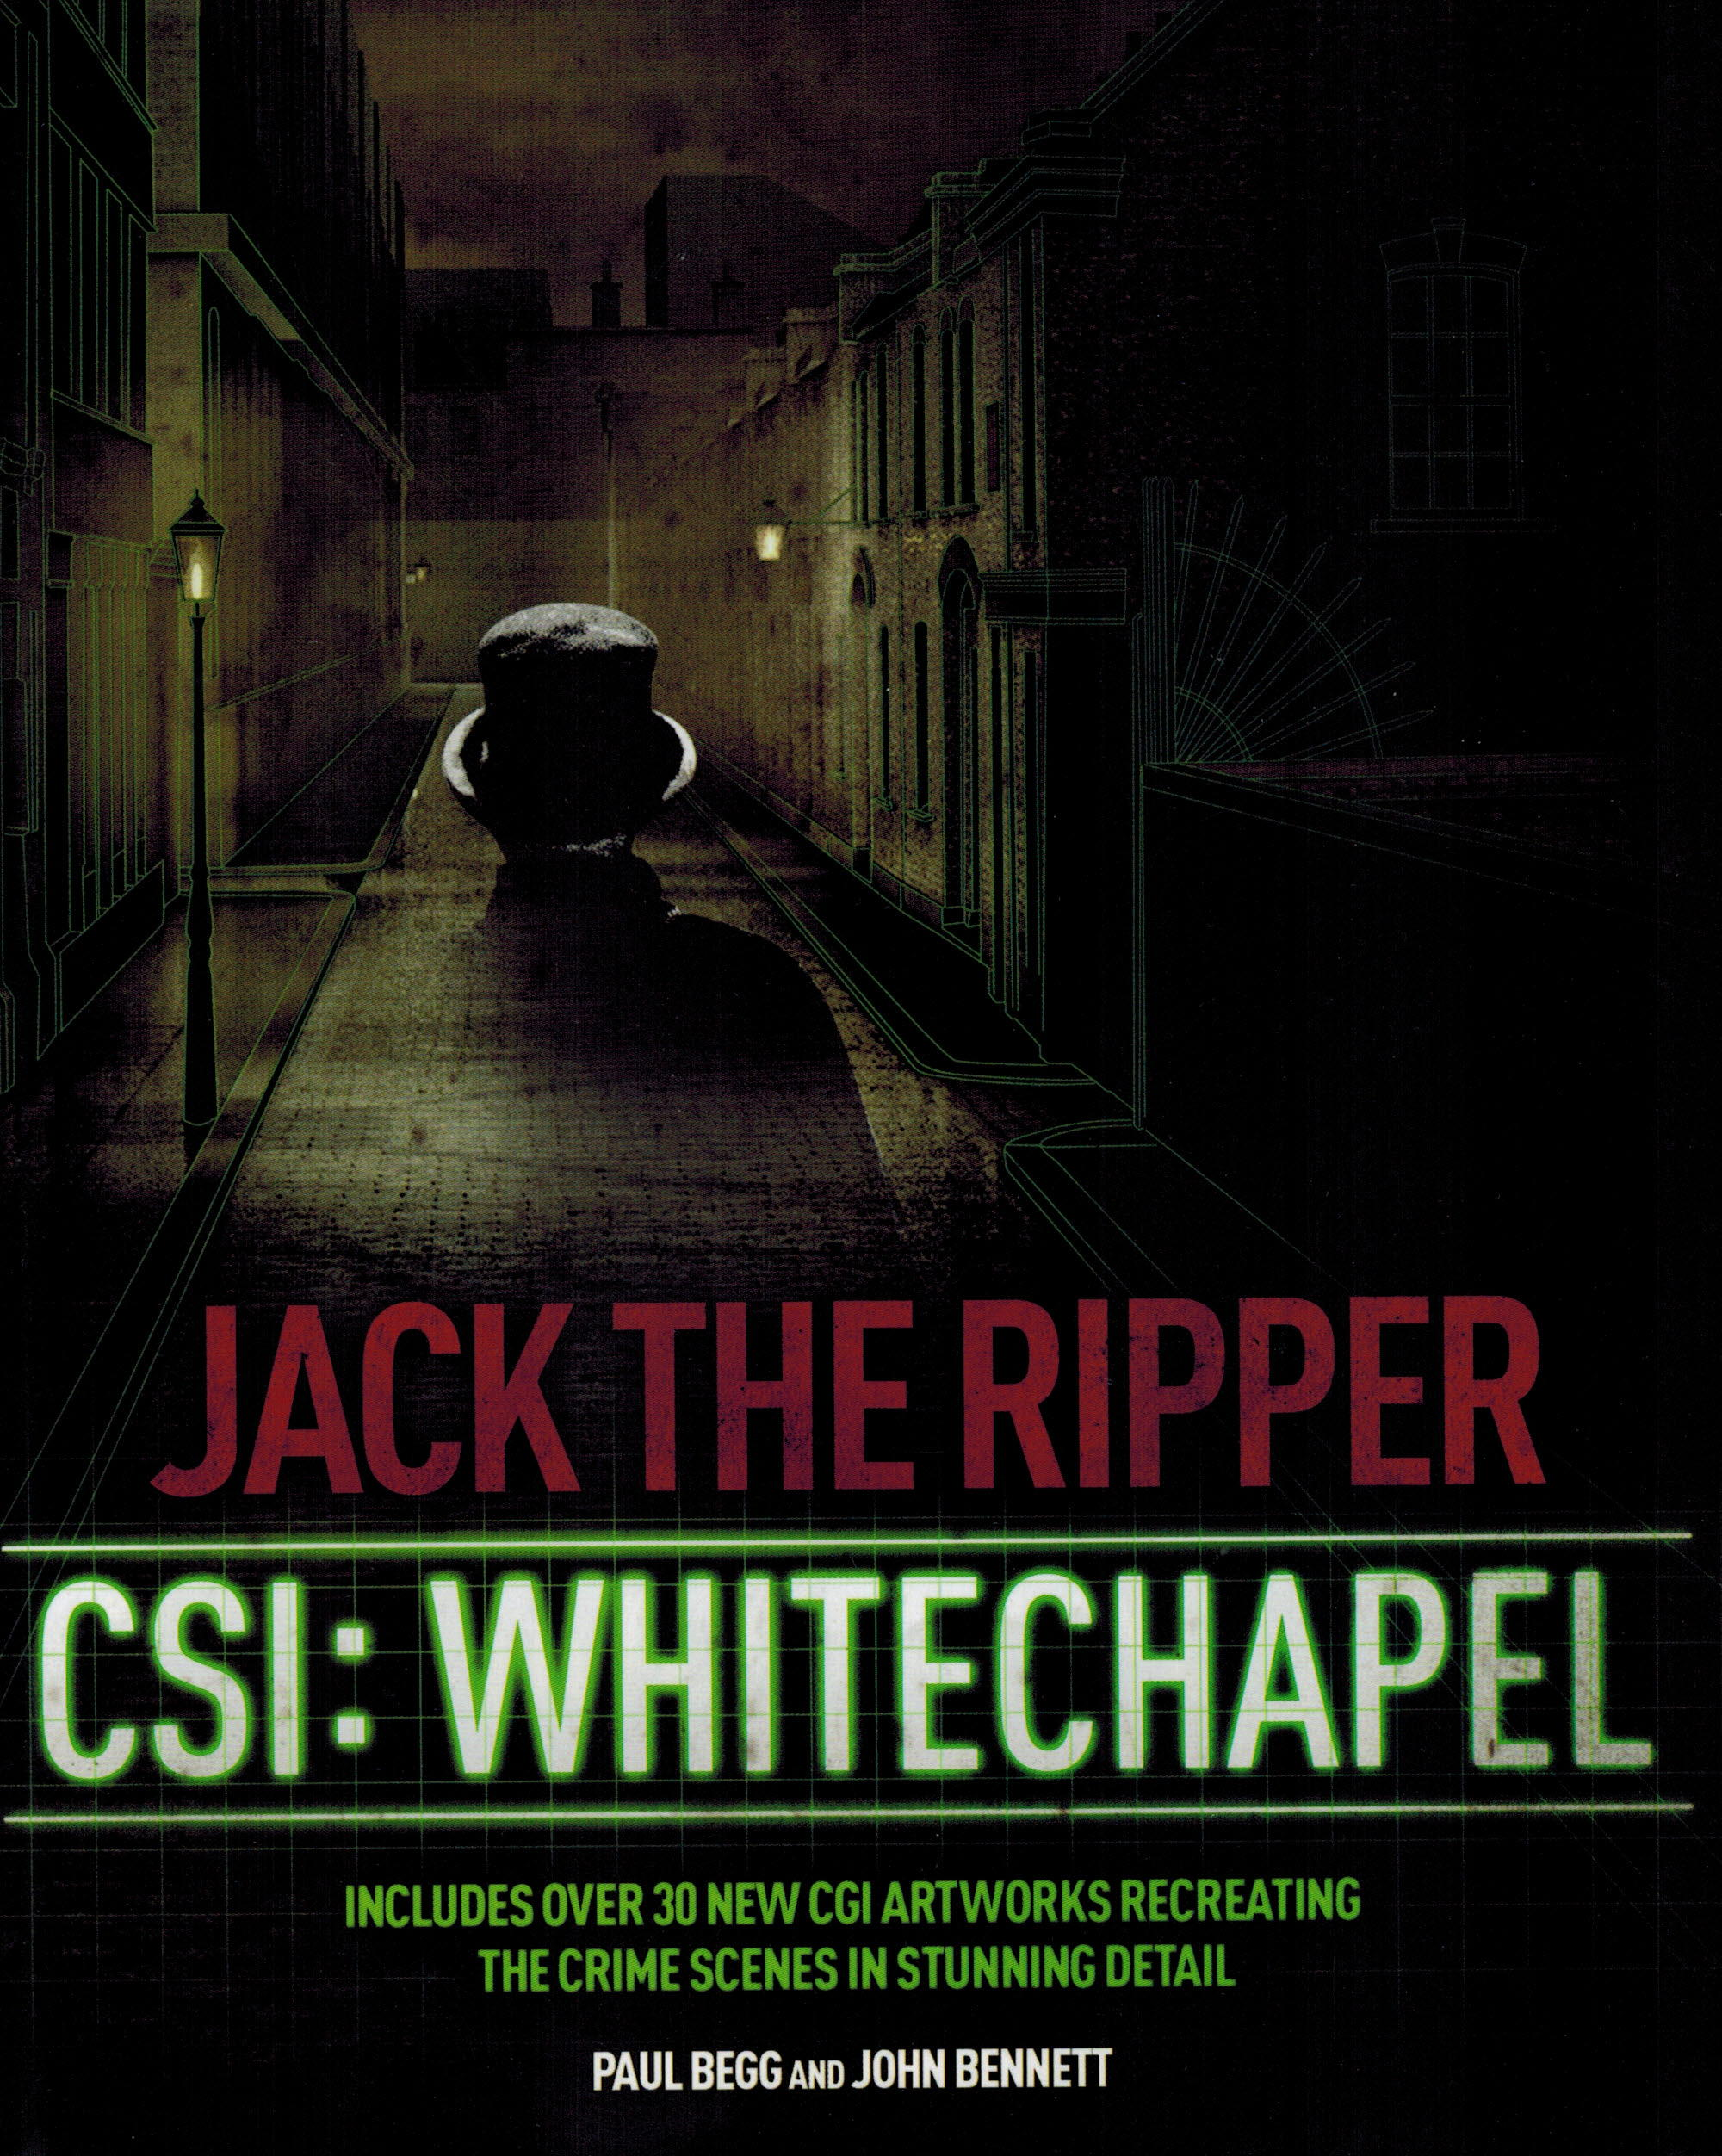 an analysis of the topic of the jack the ripper From hell takes as its premise stephen knight's theory that the jack the ripper murders were part of a conspiracy to conceal the birth of an illegitimate royal baby fathered by prince albert victor, duke of clarence, slightly modified: the involvement of walter sickert is reduced, and knight's allegation that the child's mother was a catholic has been dropped.